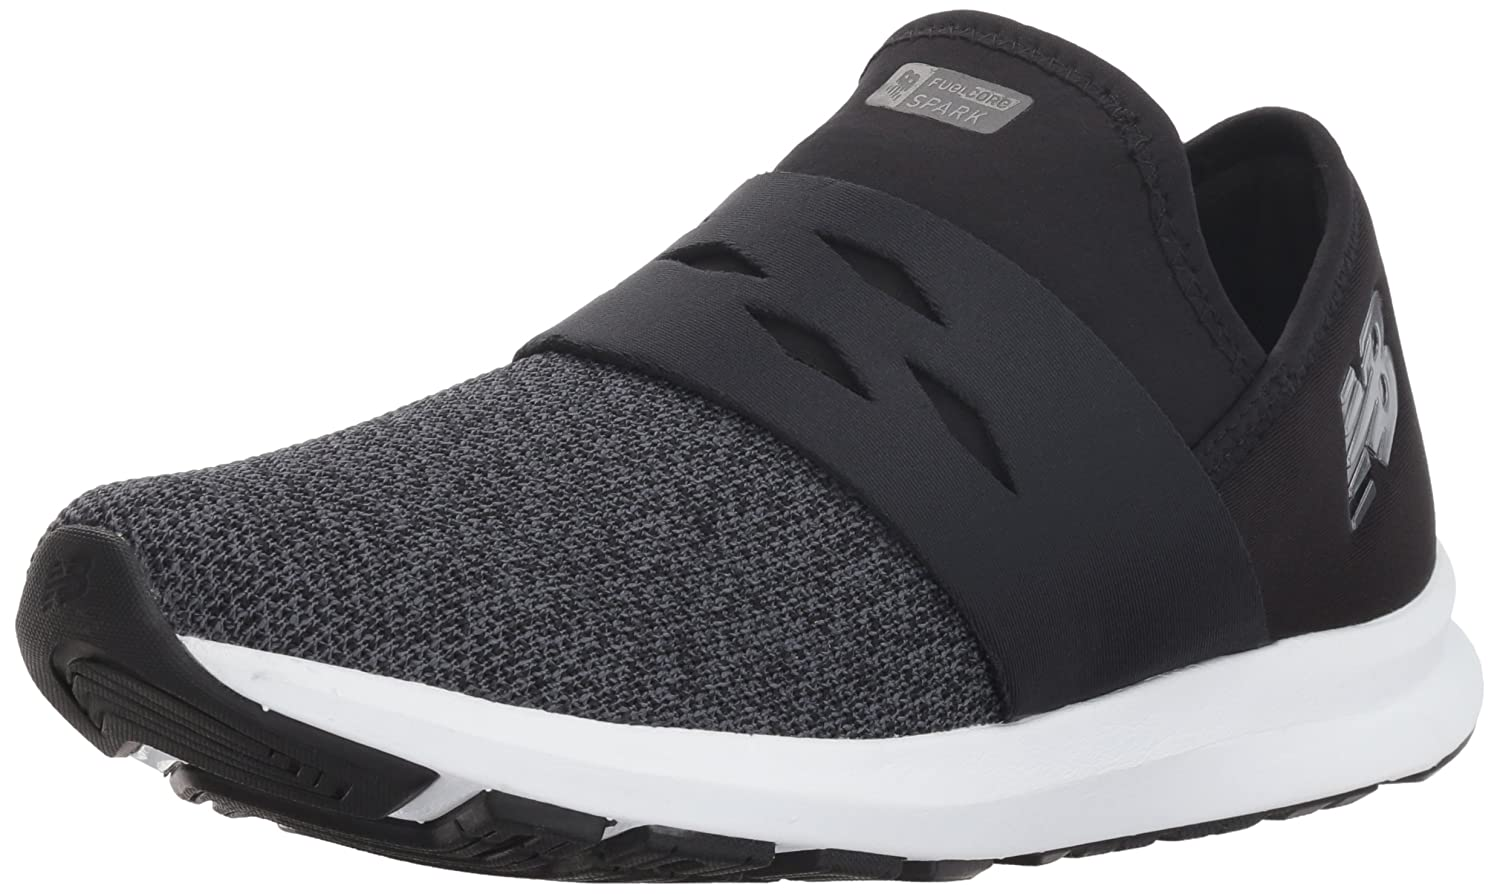 New Balance Women's SPK V1 FuelCore Cross Trainer B075R7G624 11 M US|Black